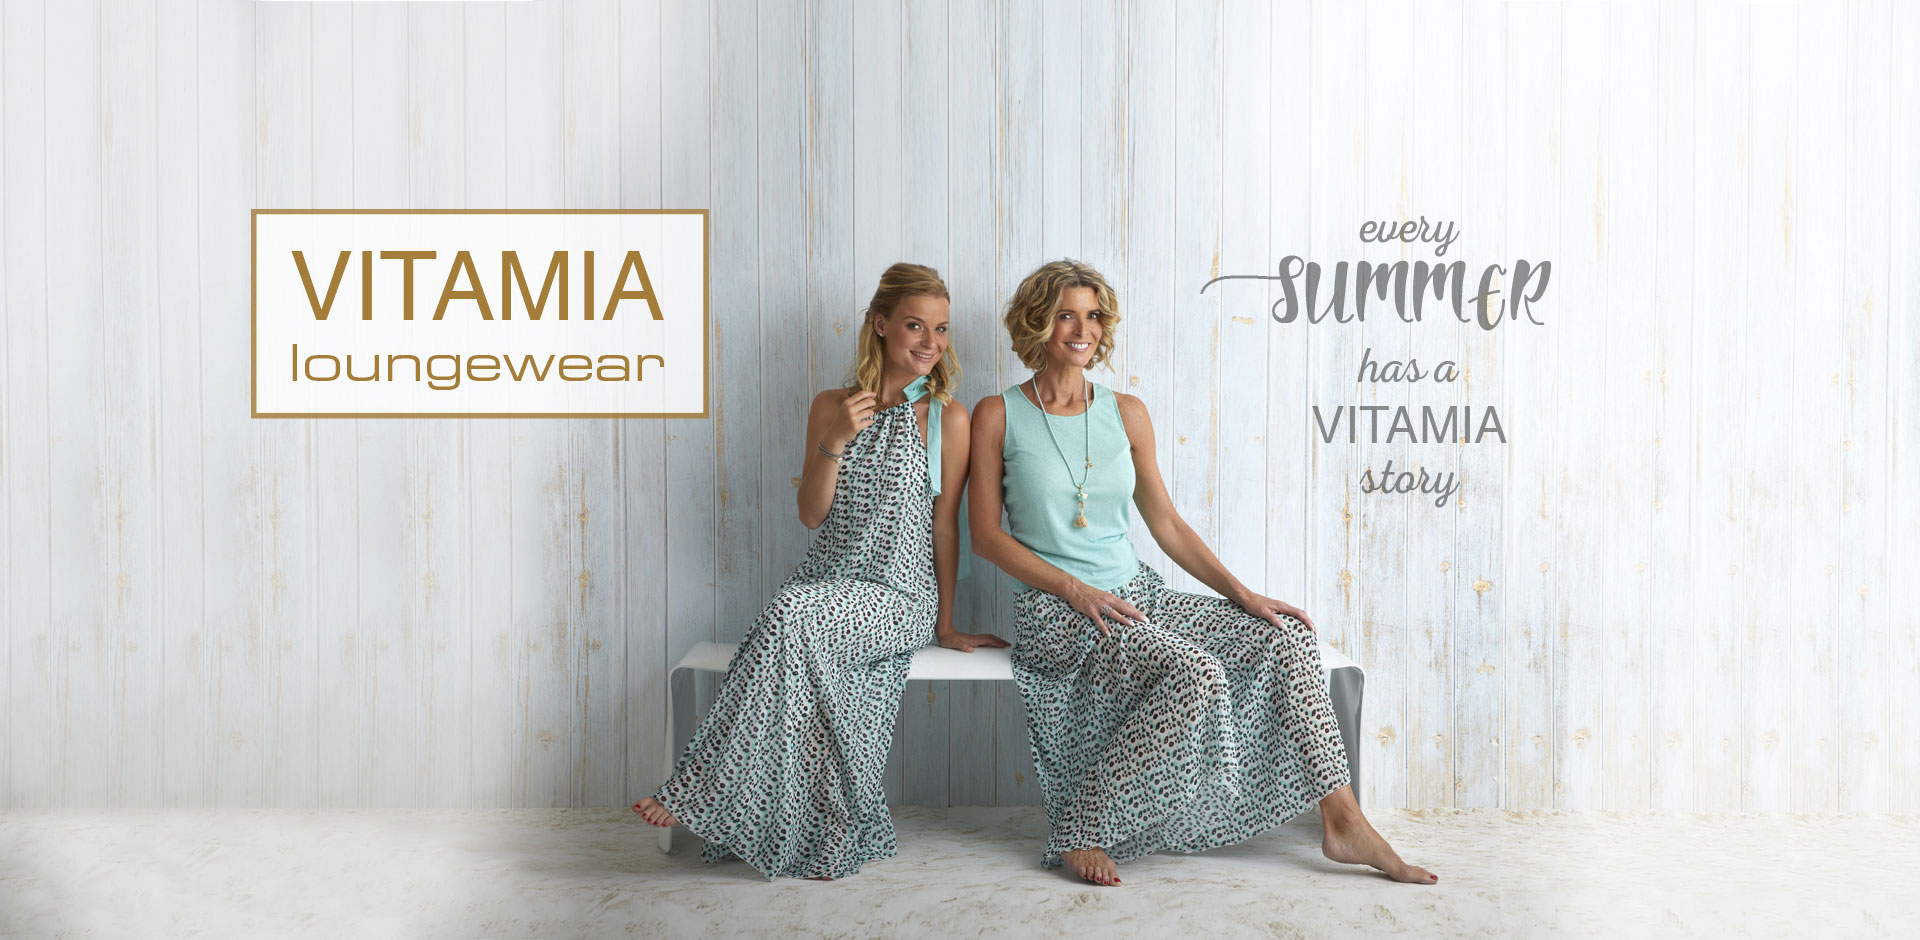 THE NEW COLLECTION 2020 OF VITAMIA IS THERE!